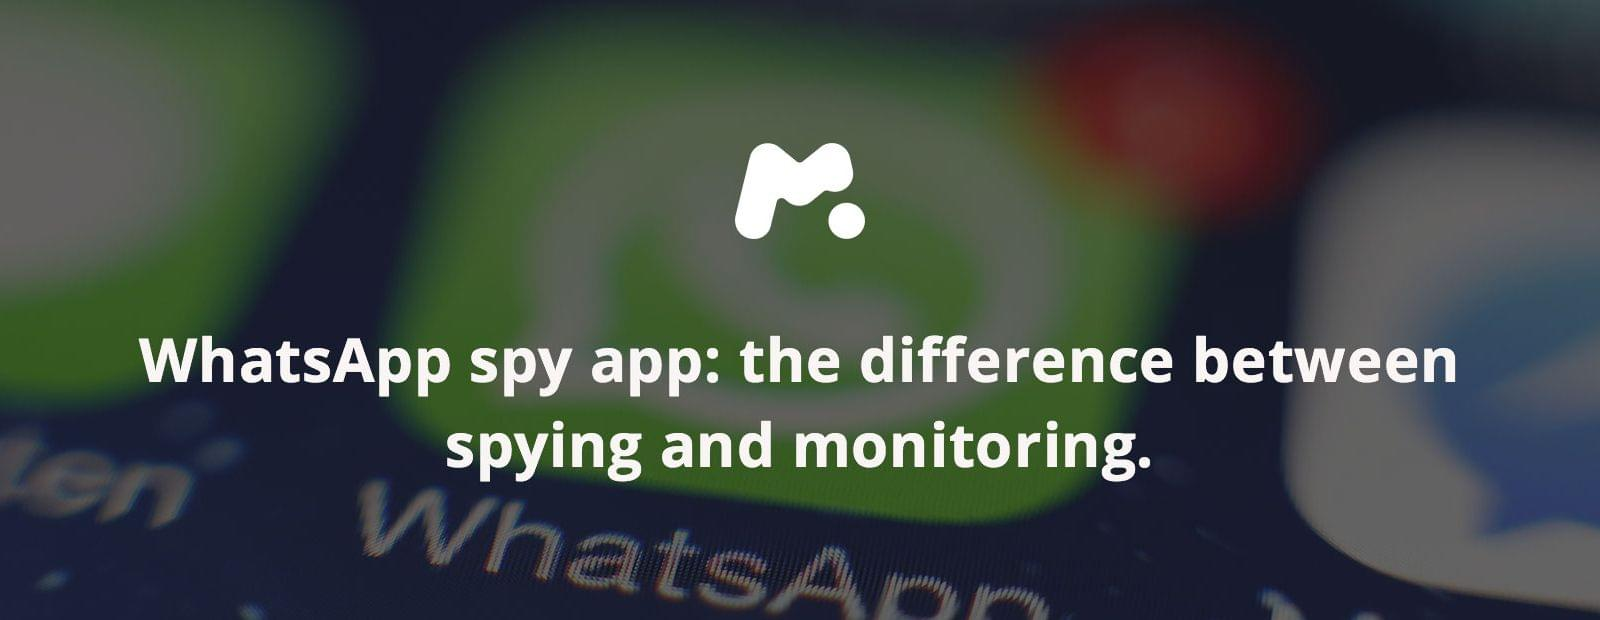 WhatsApp spy app: the difference between spying and monitoring